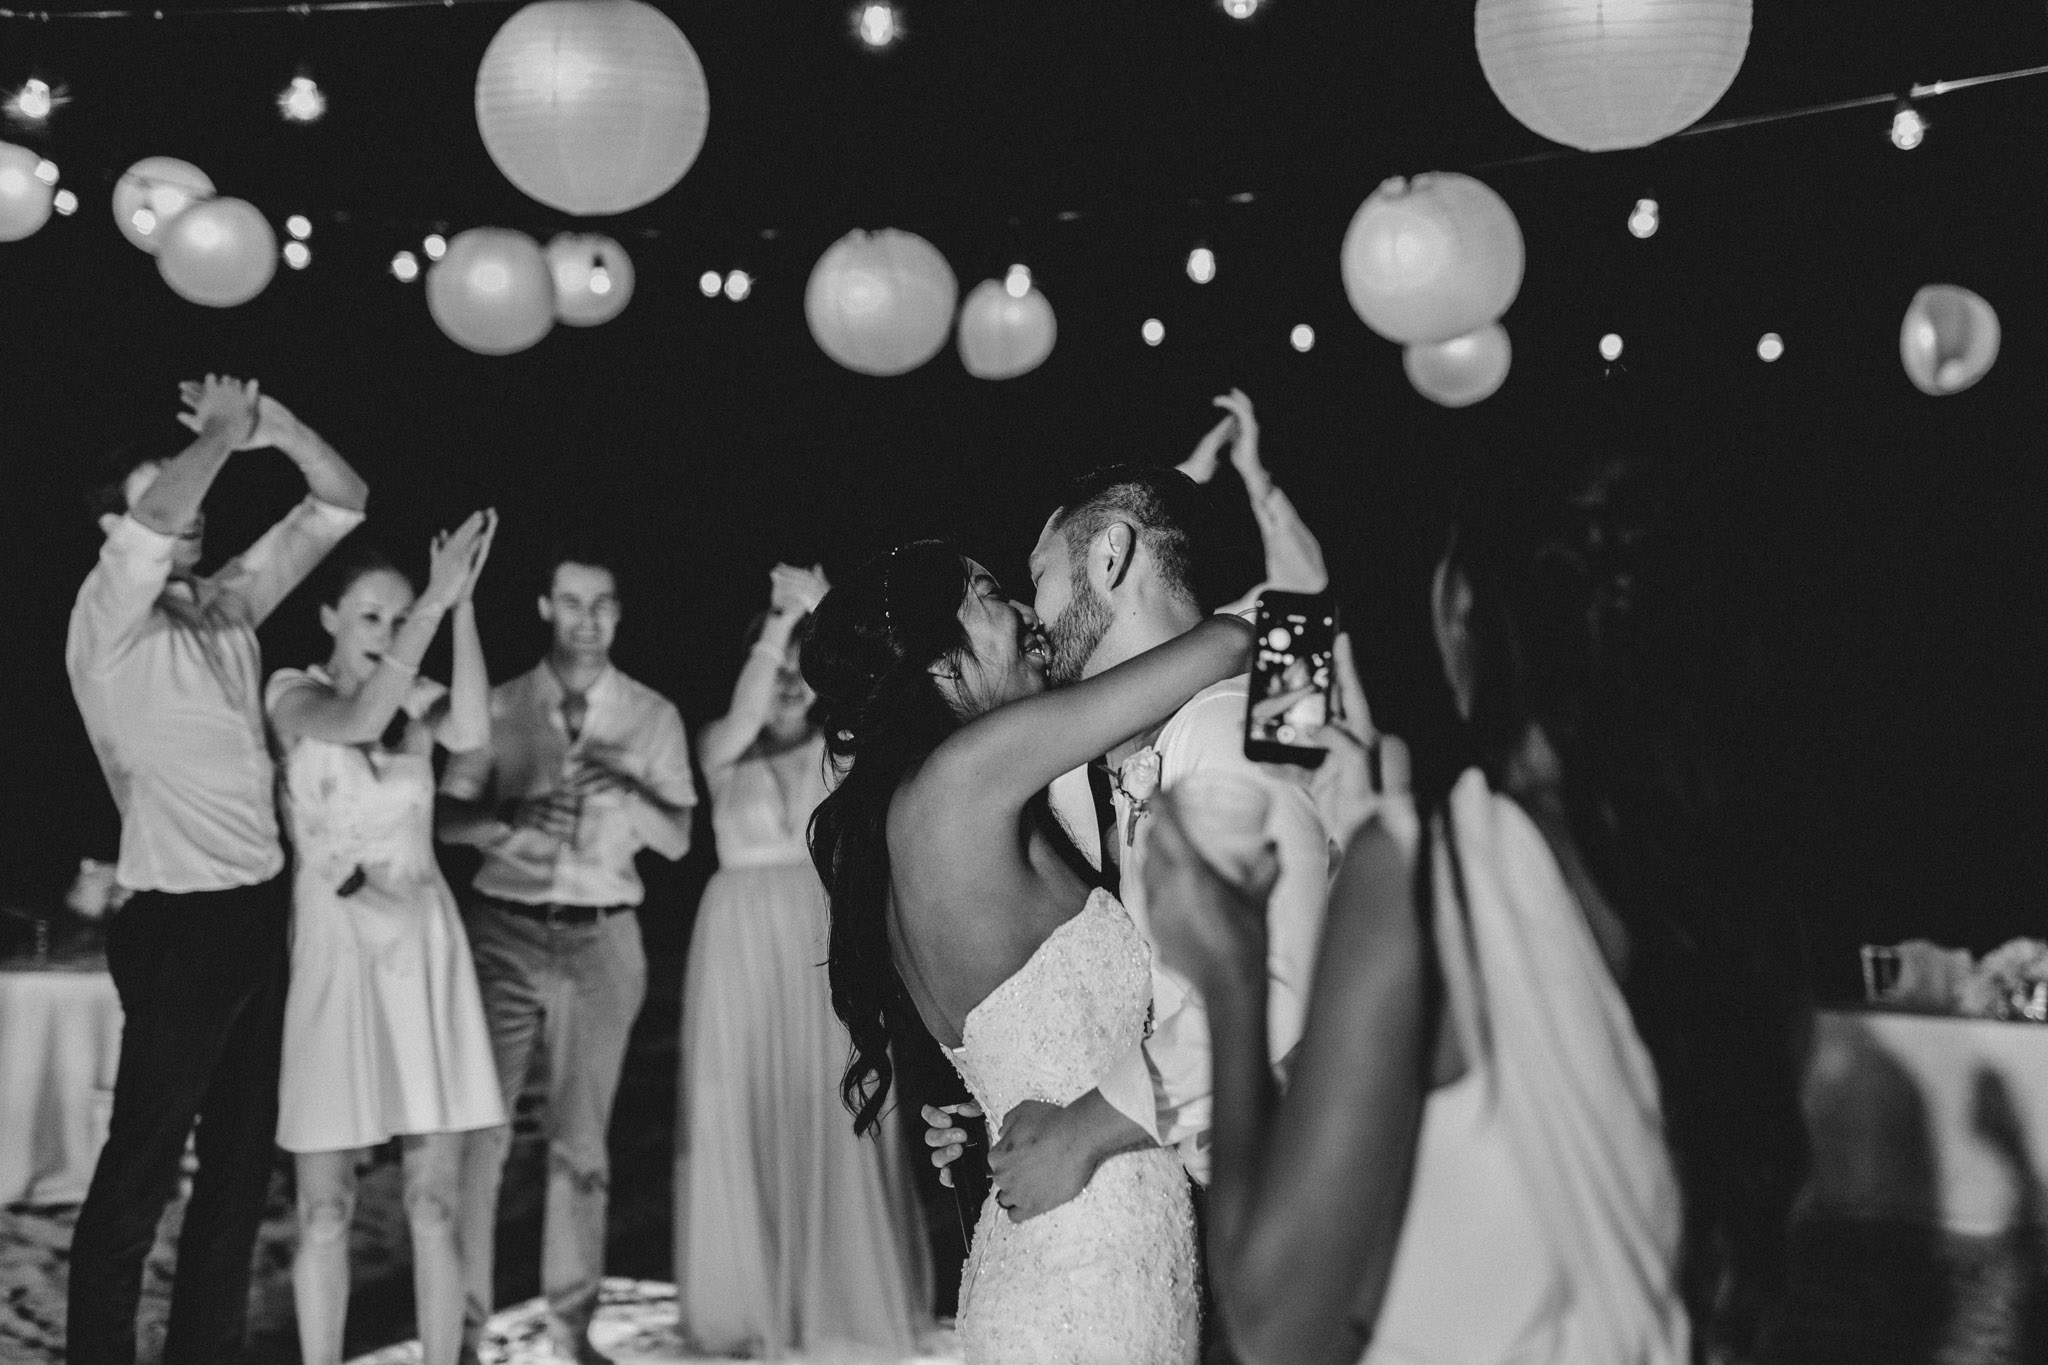 Cancun Mexico Wedding - celebrations